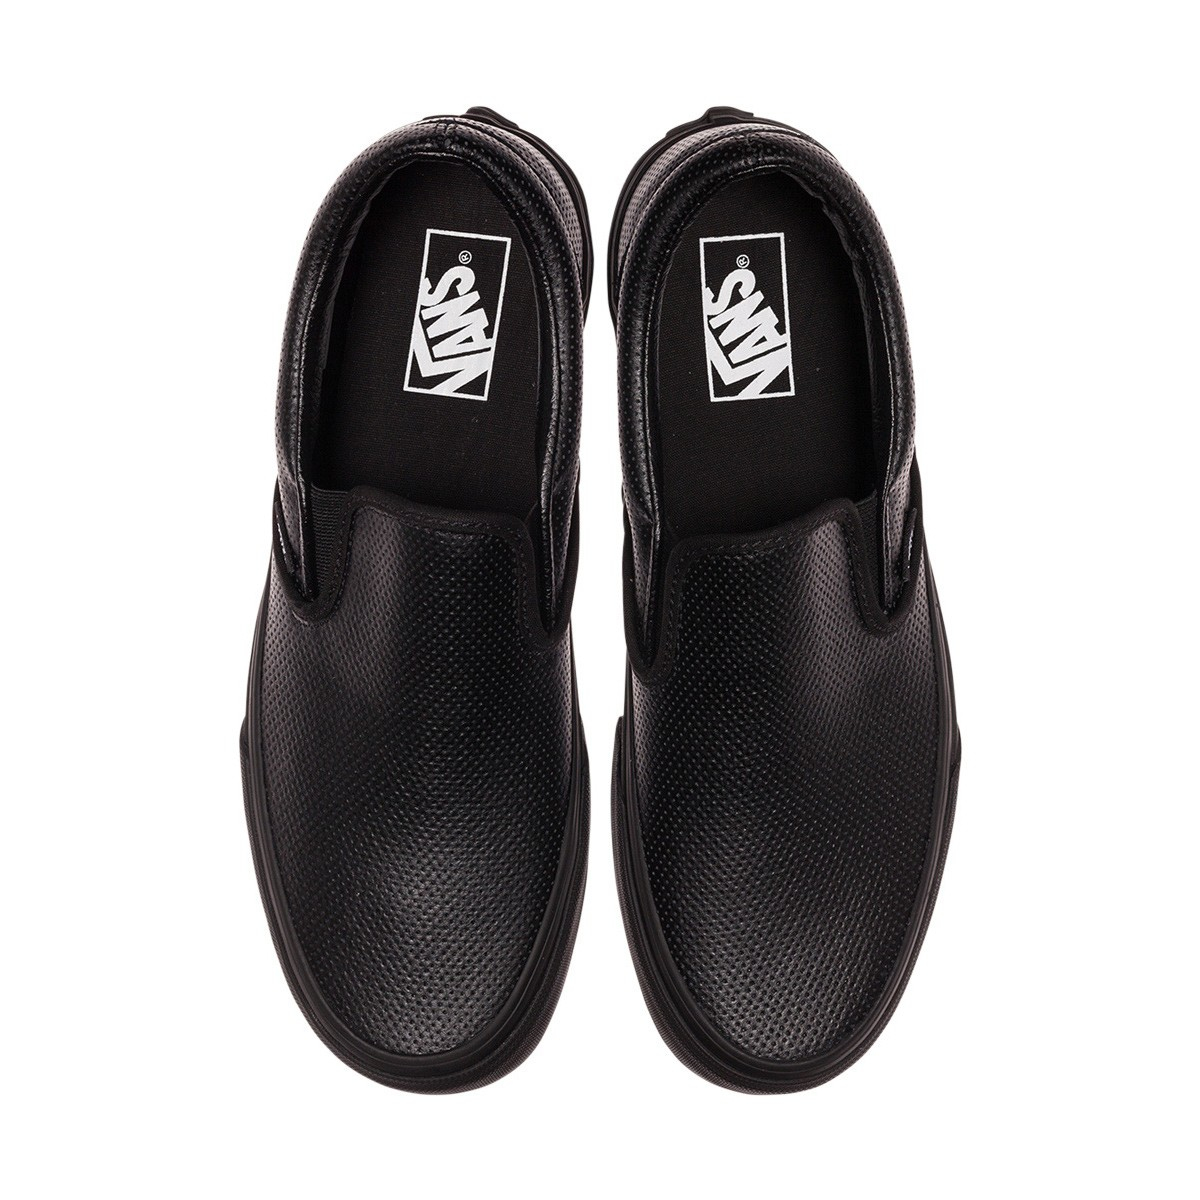 Vans Perforated Leather Classic Slip-on in Black for Men